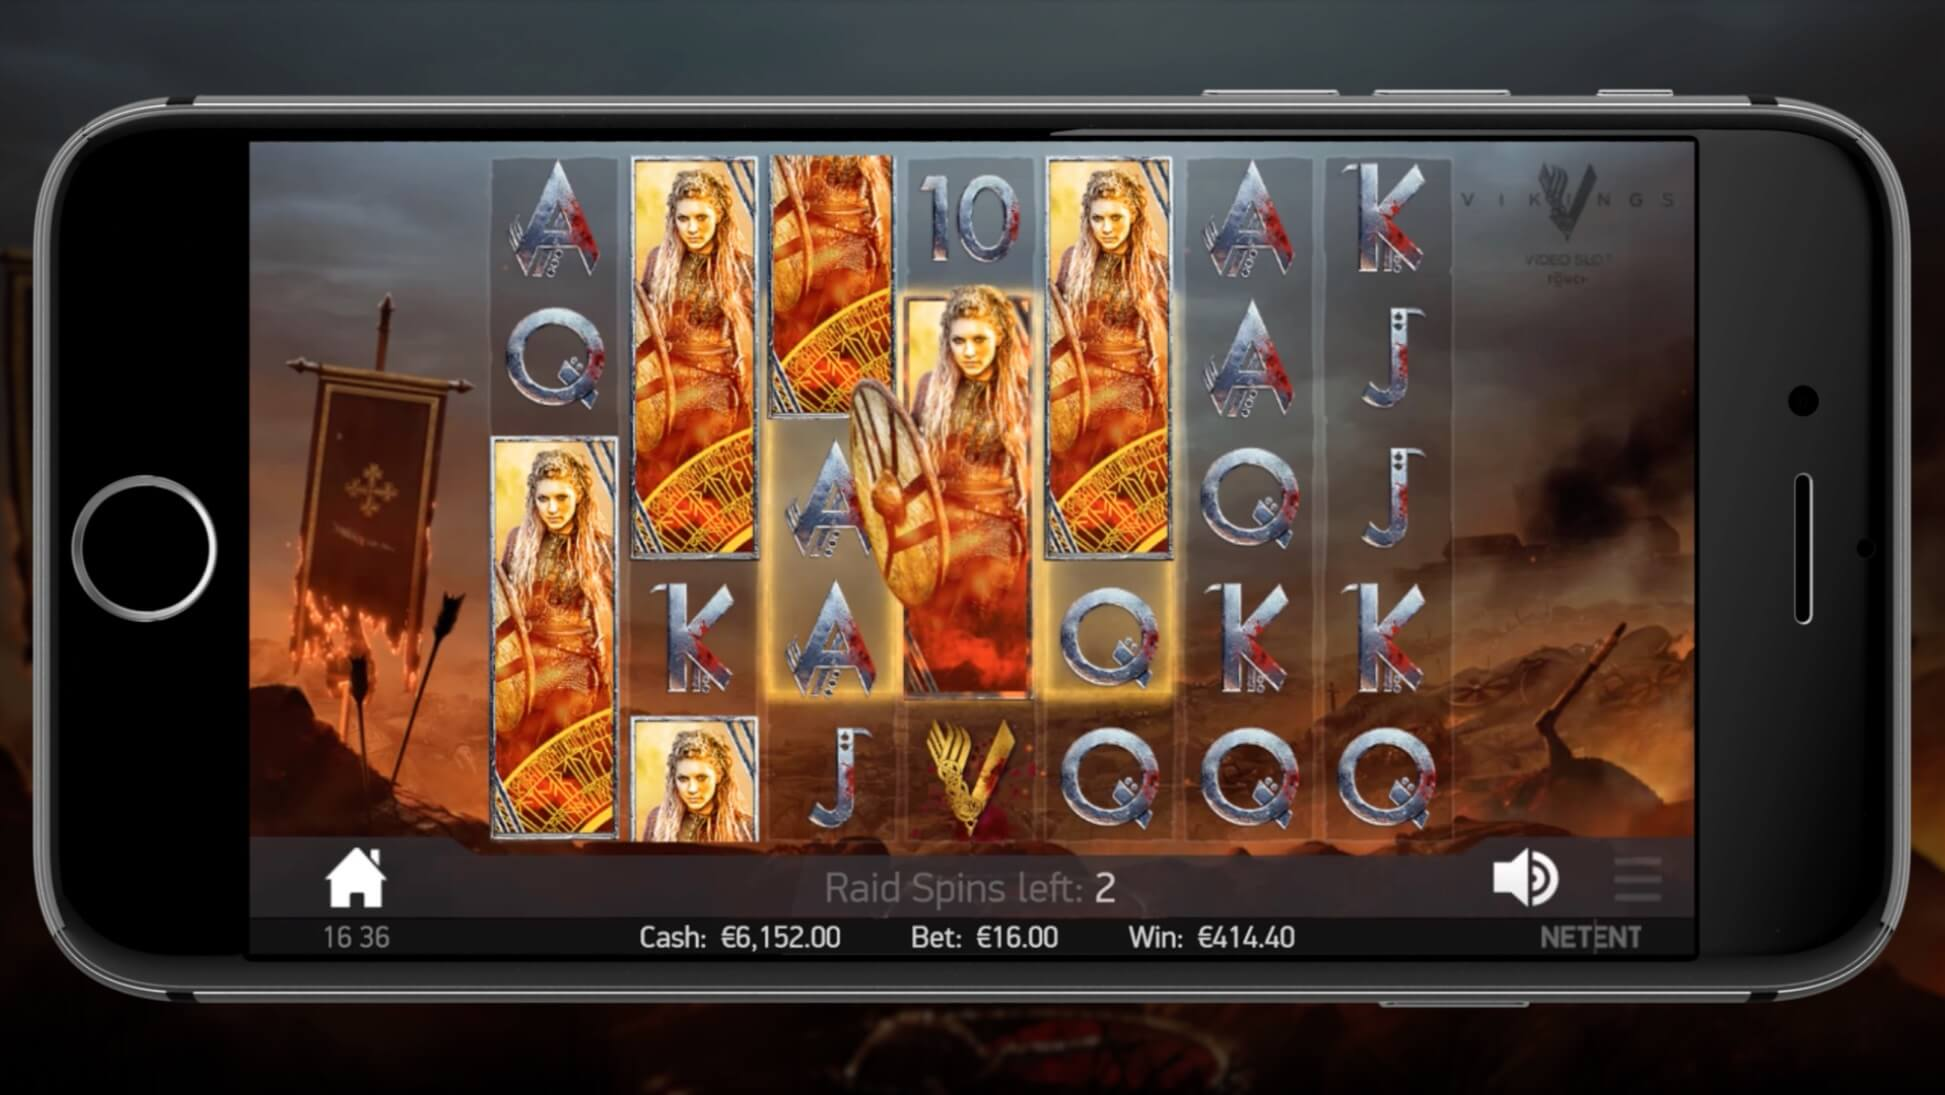 vikings slot mobile version netent